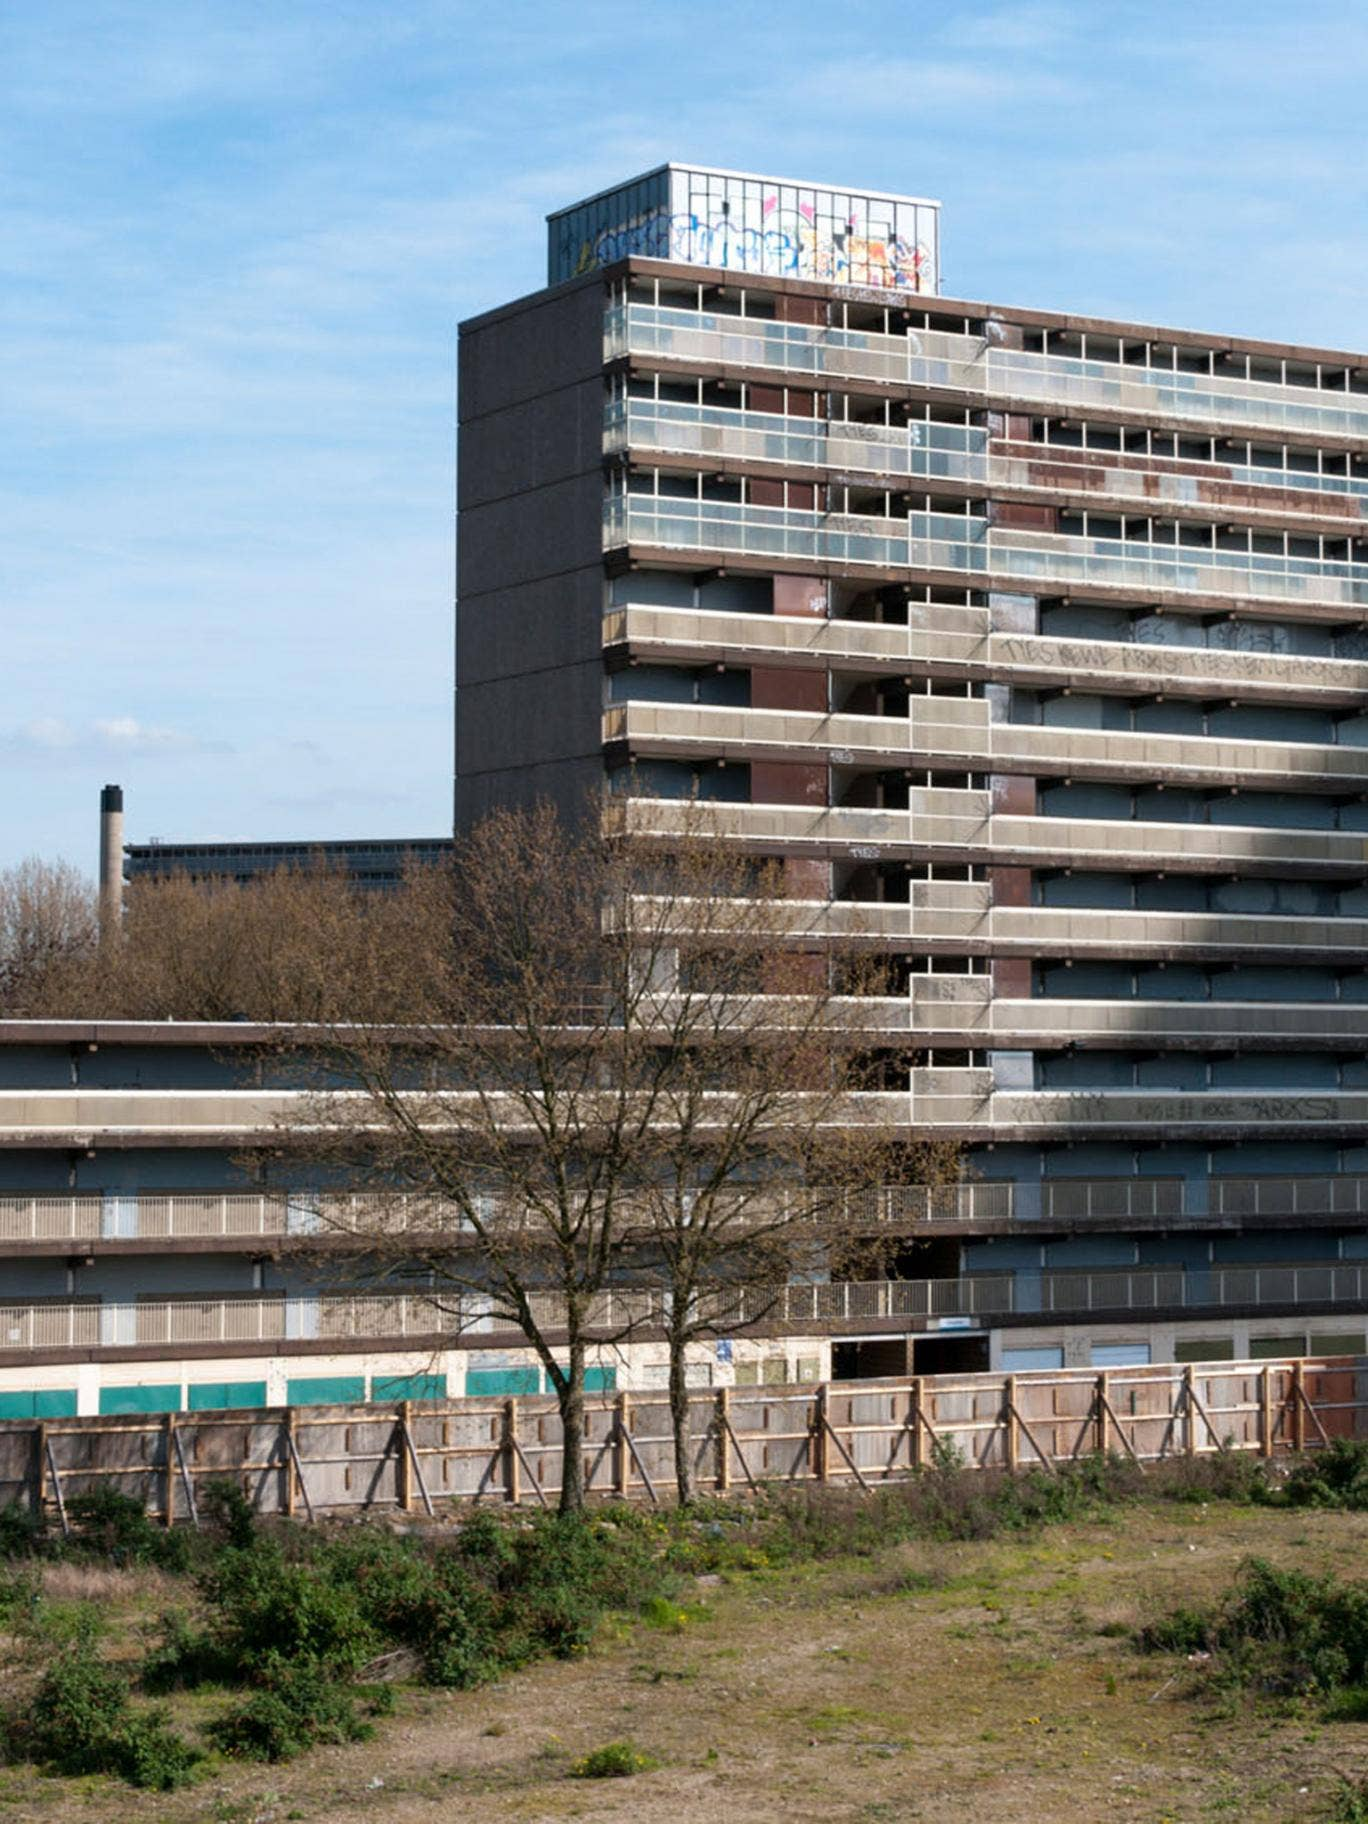 Just 79 of the 2,535 new homes being built on the Heygate Estate will be social housing for rent